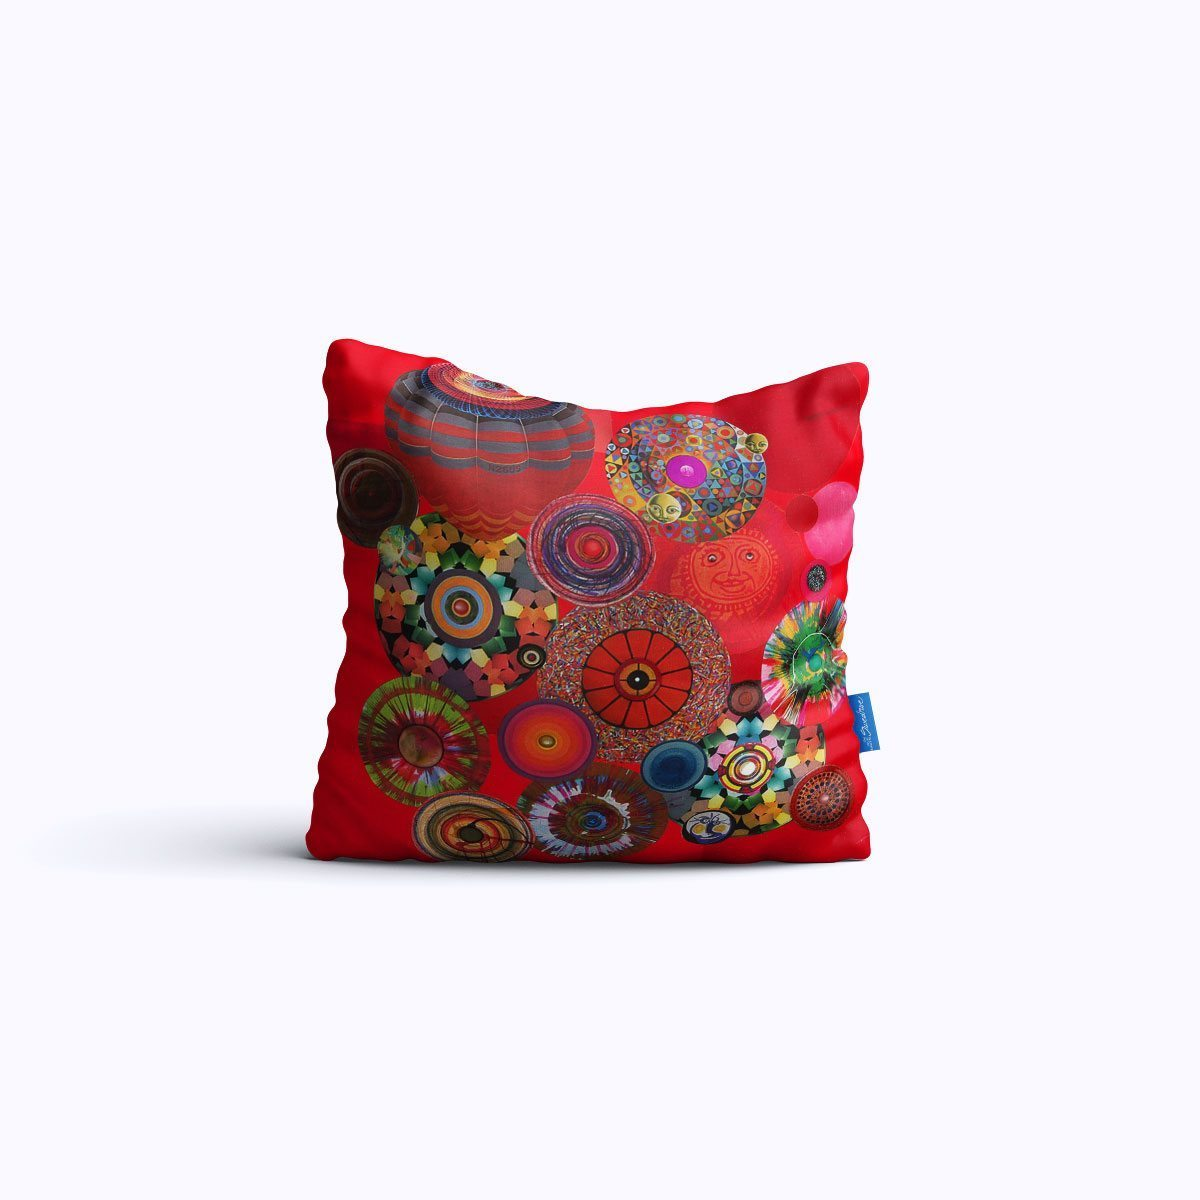 RMS007-Asteroid Waltz - Throw Pillow - Swedroe Licensing